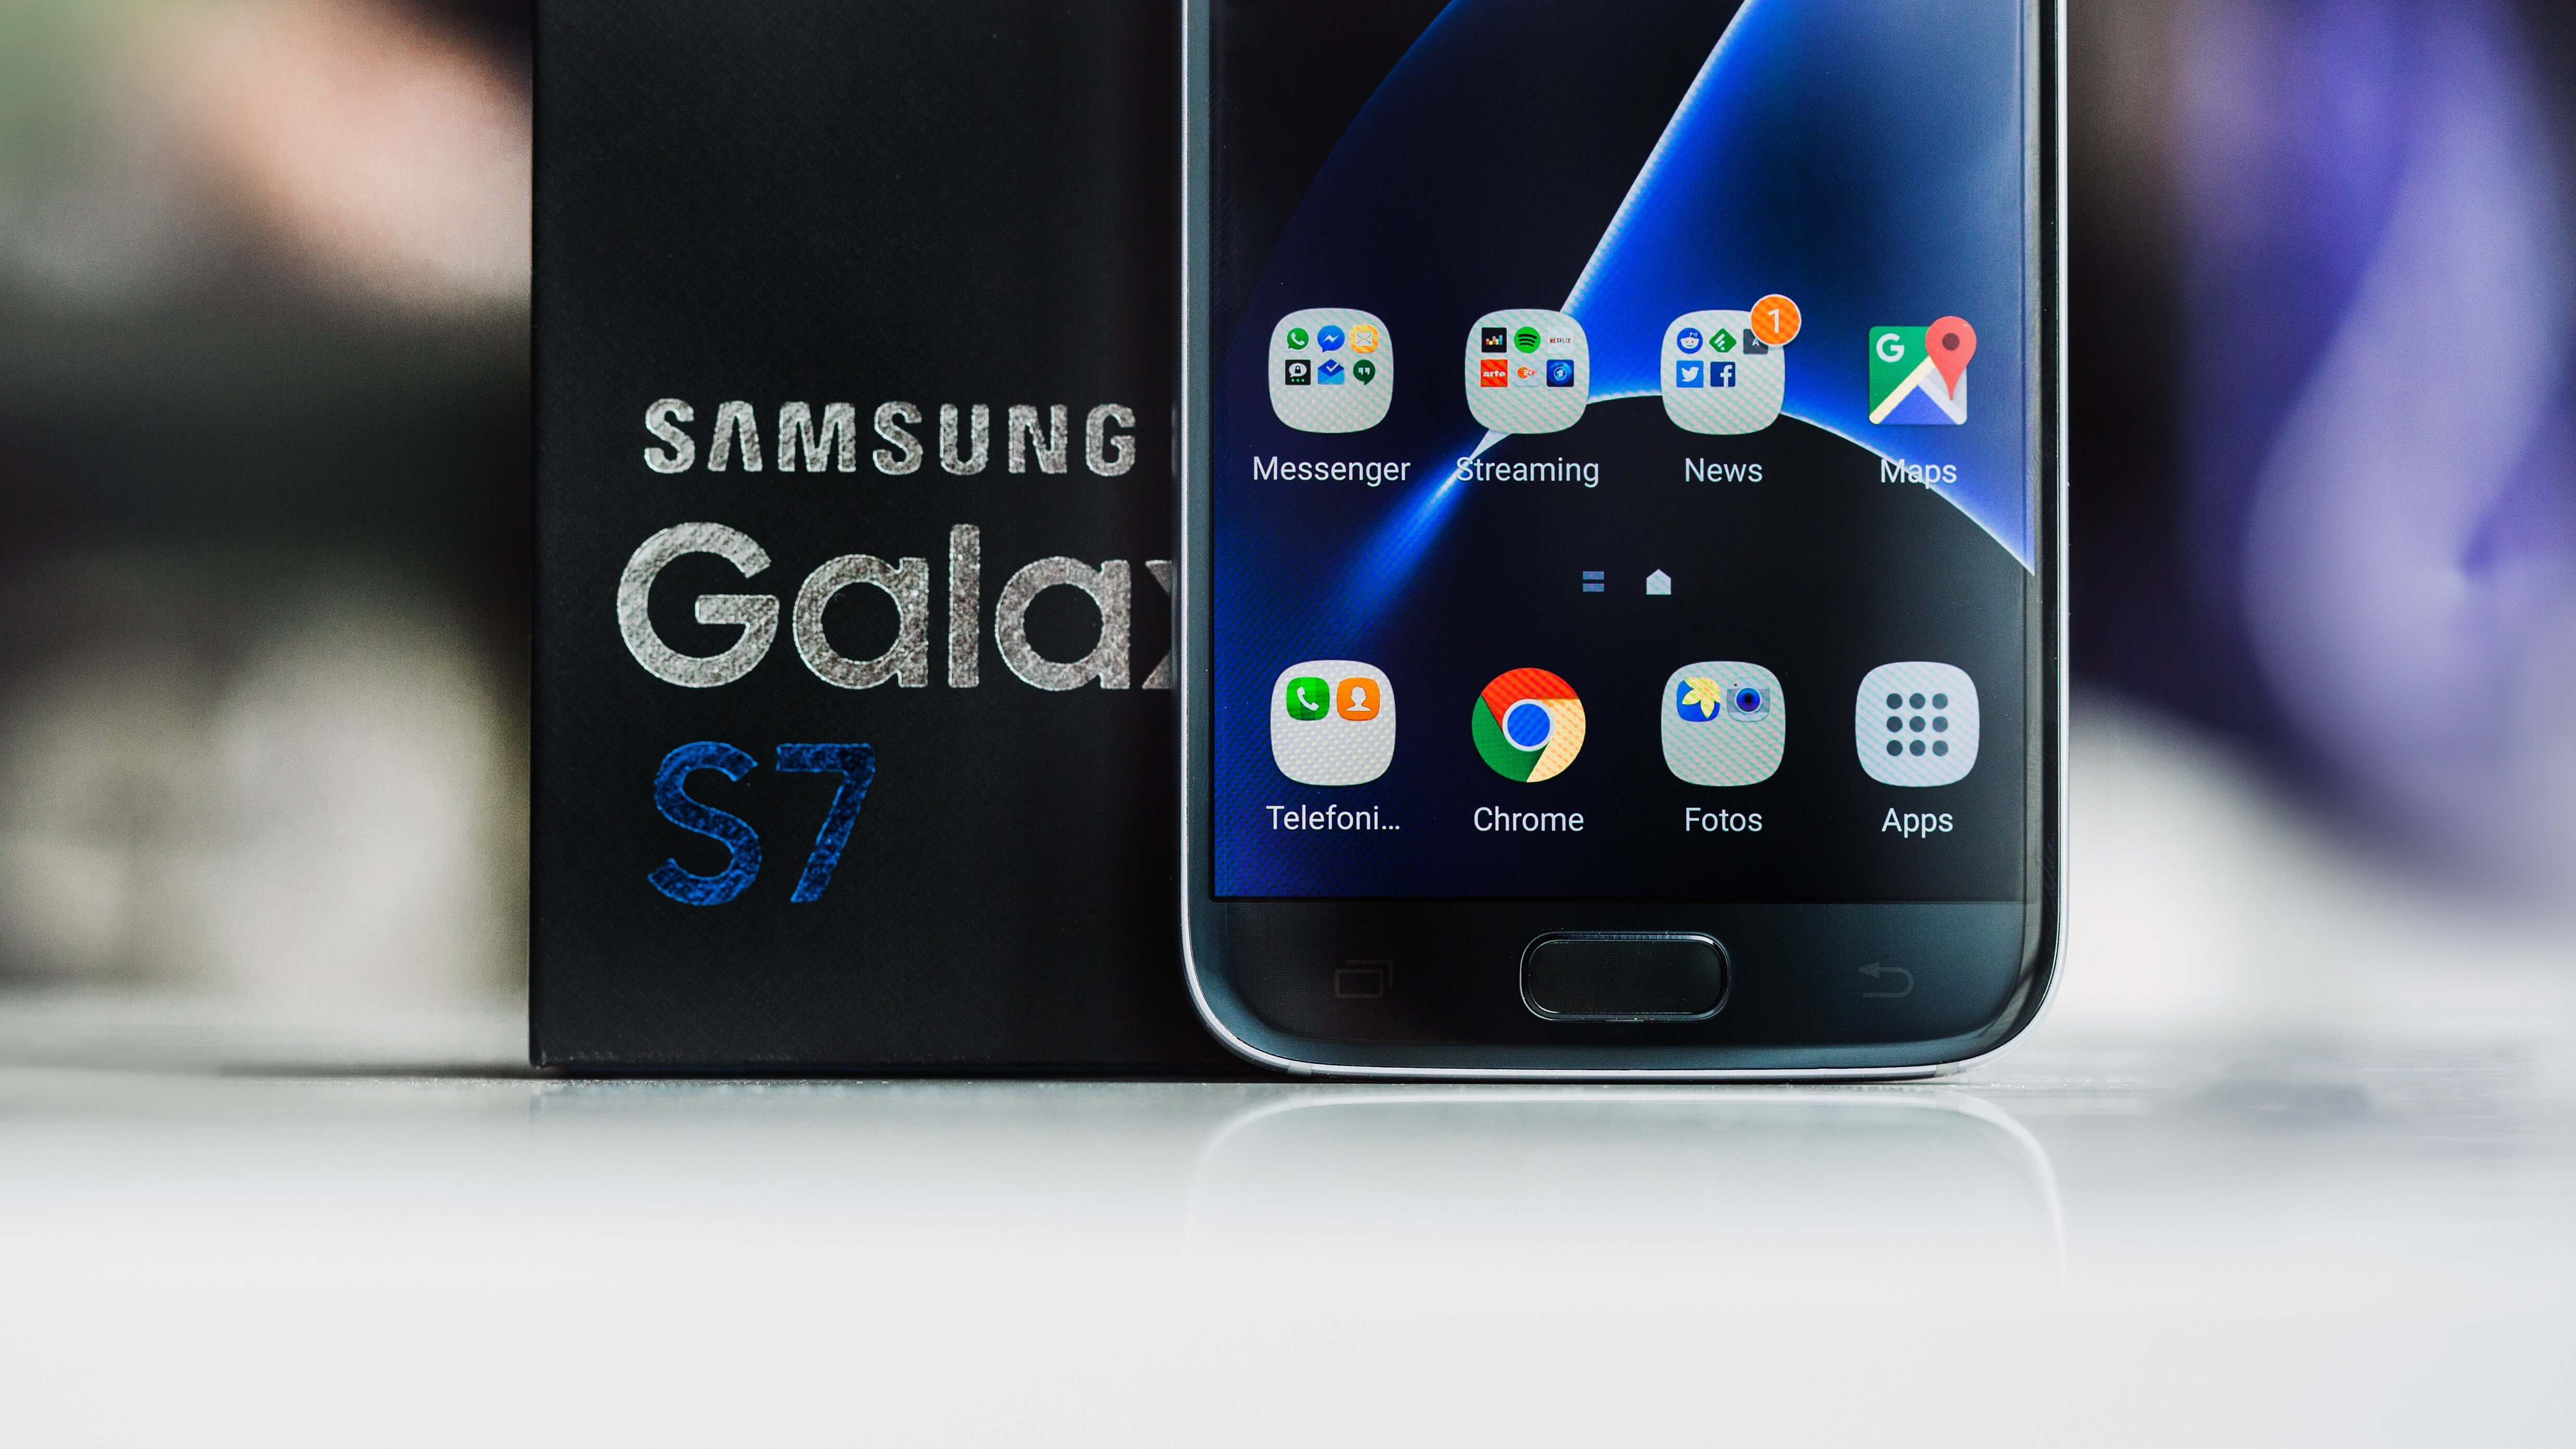 Samsung Galaxy S7 – Review